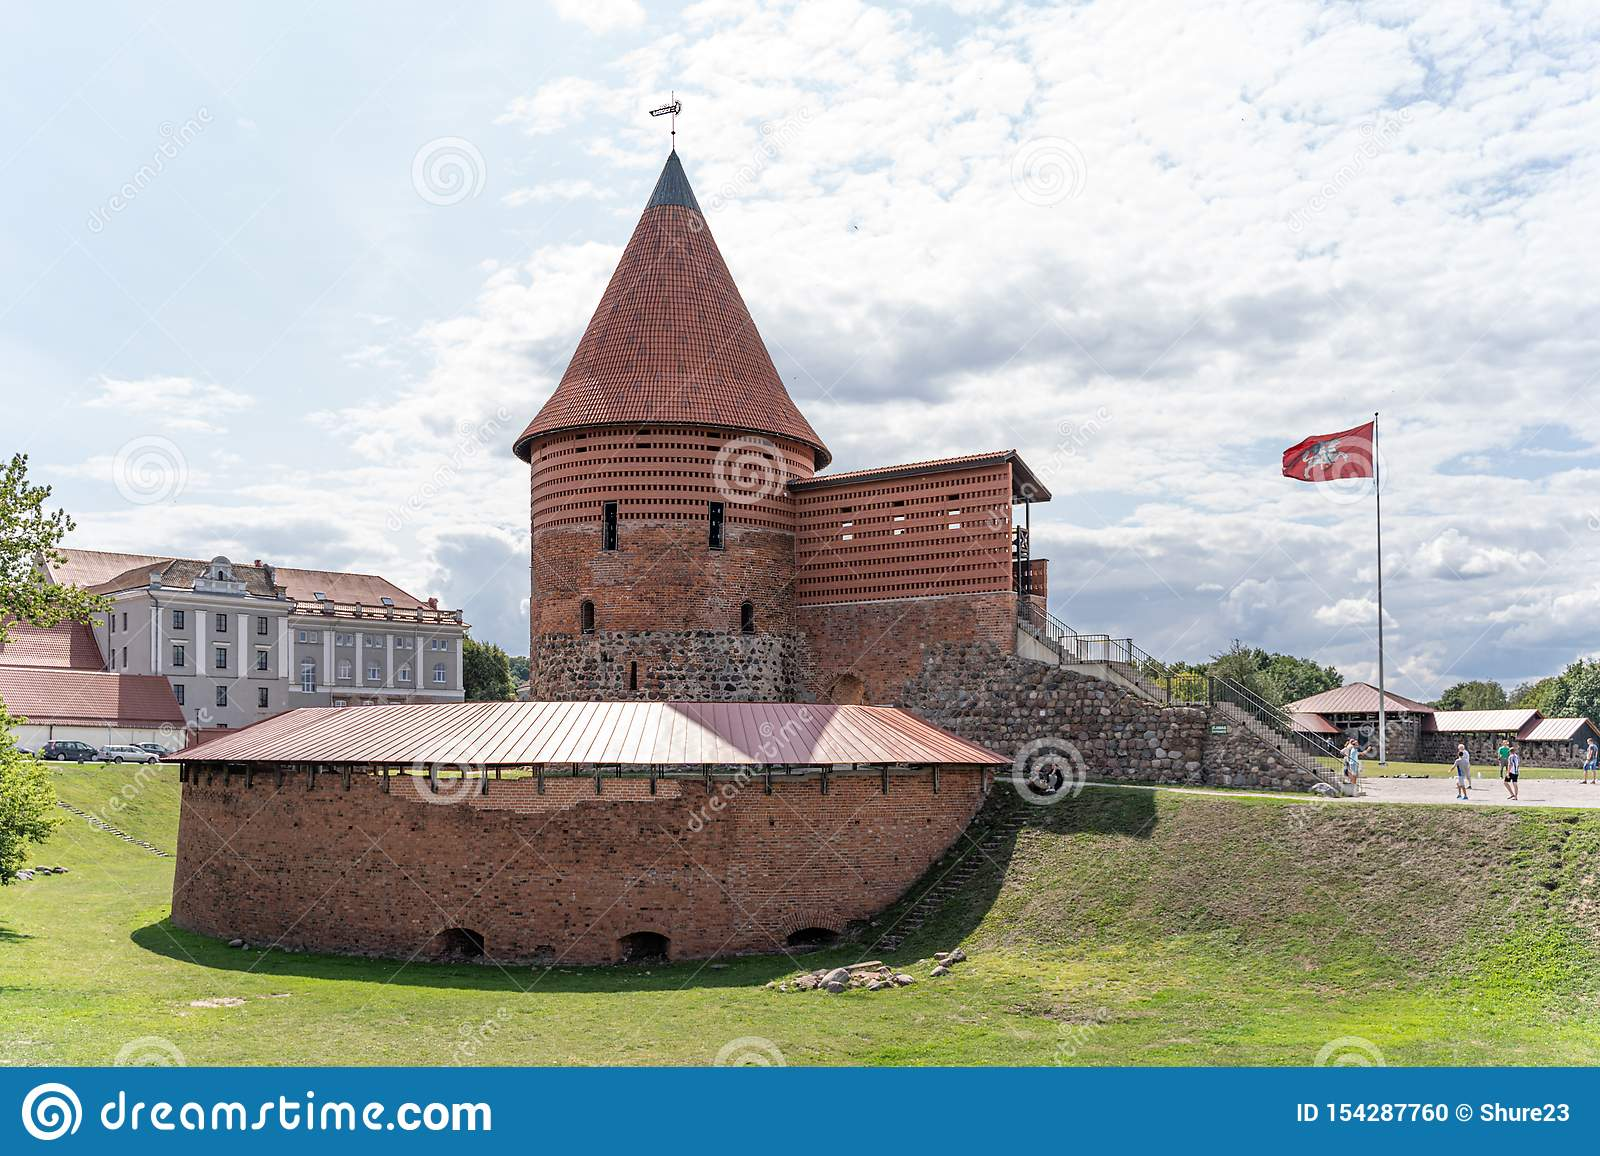 View of historical gothic Kaunas Castle from medieval times in Kaunas, Lithuania. On beautiful blue sky background. Old castle in